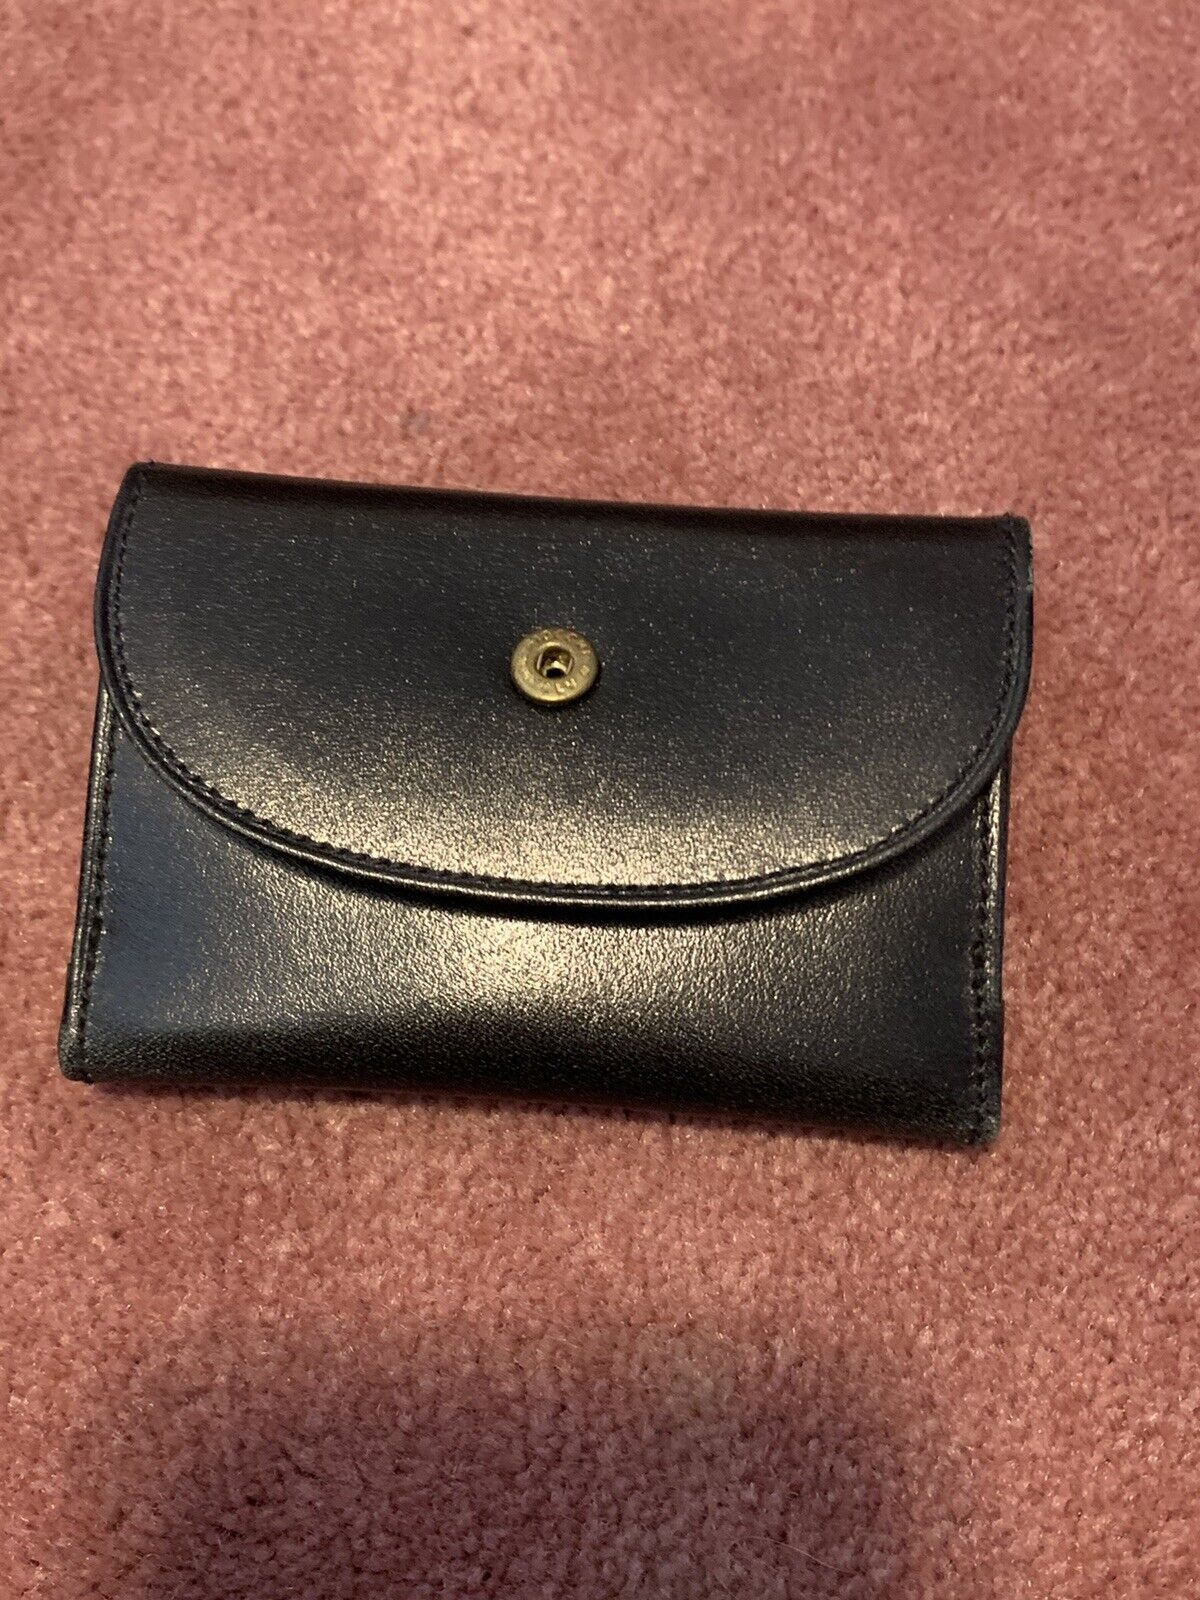 NEW Vintage MARK CROSS - BLACK LEATHER - Bill Coin Wallet - Made in Italy